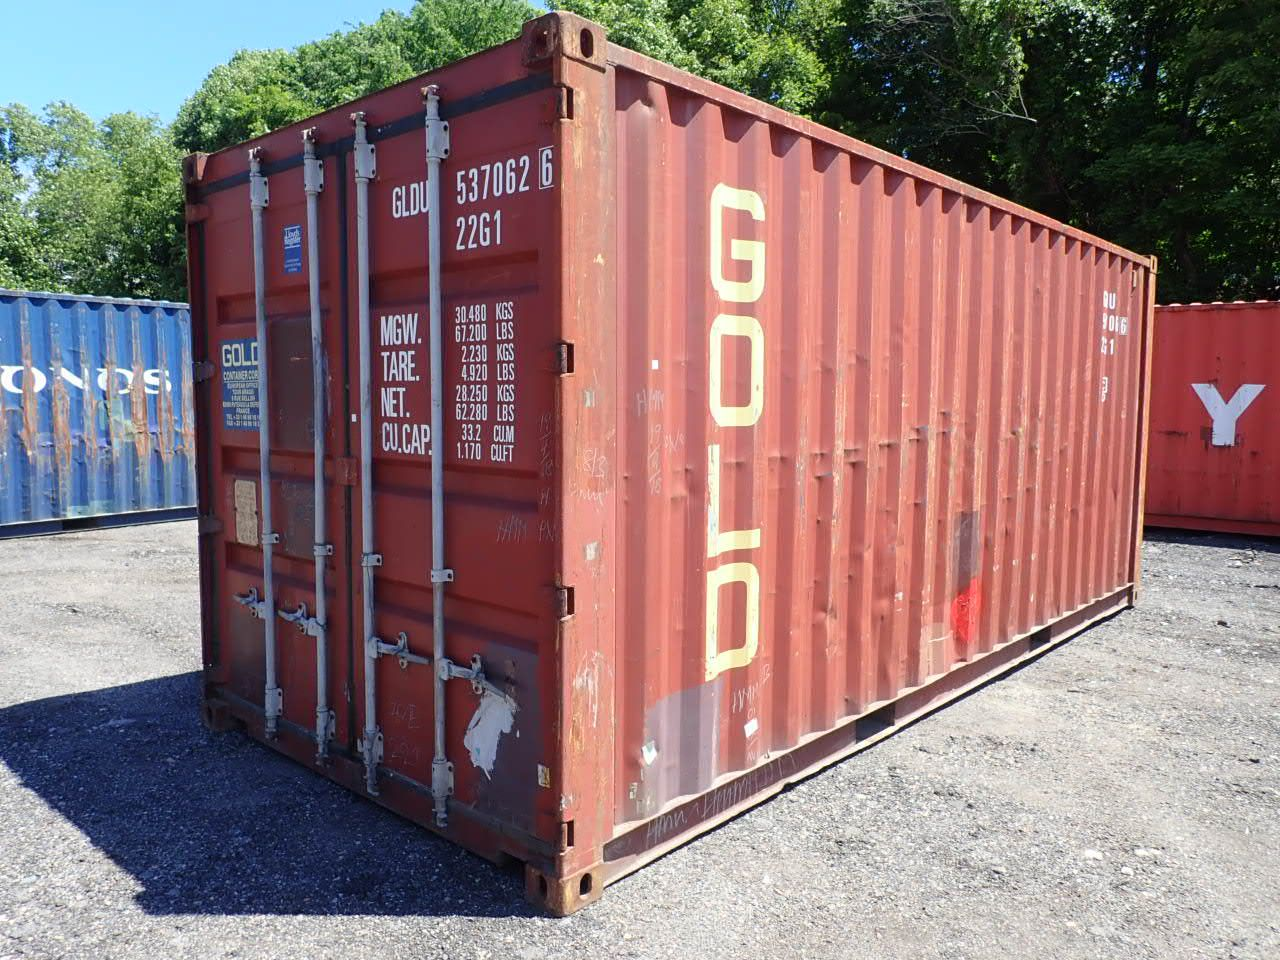 Pin By The Gift Of Time On Storage Containers Shipping Container Storage Containers For Sale Containers For Sale